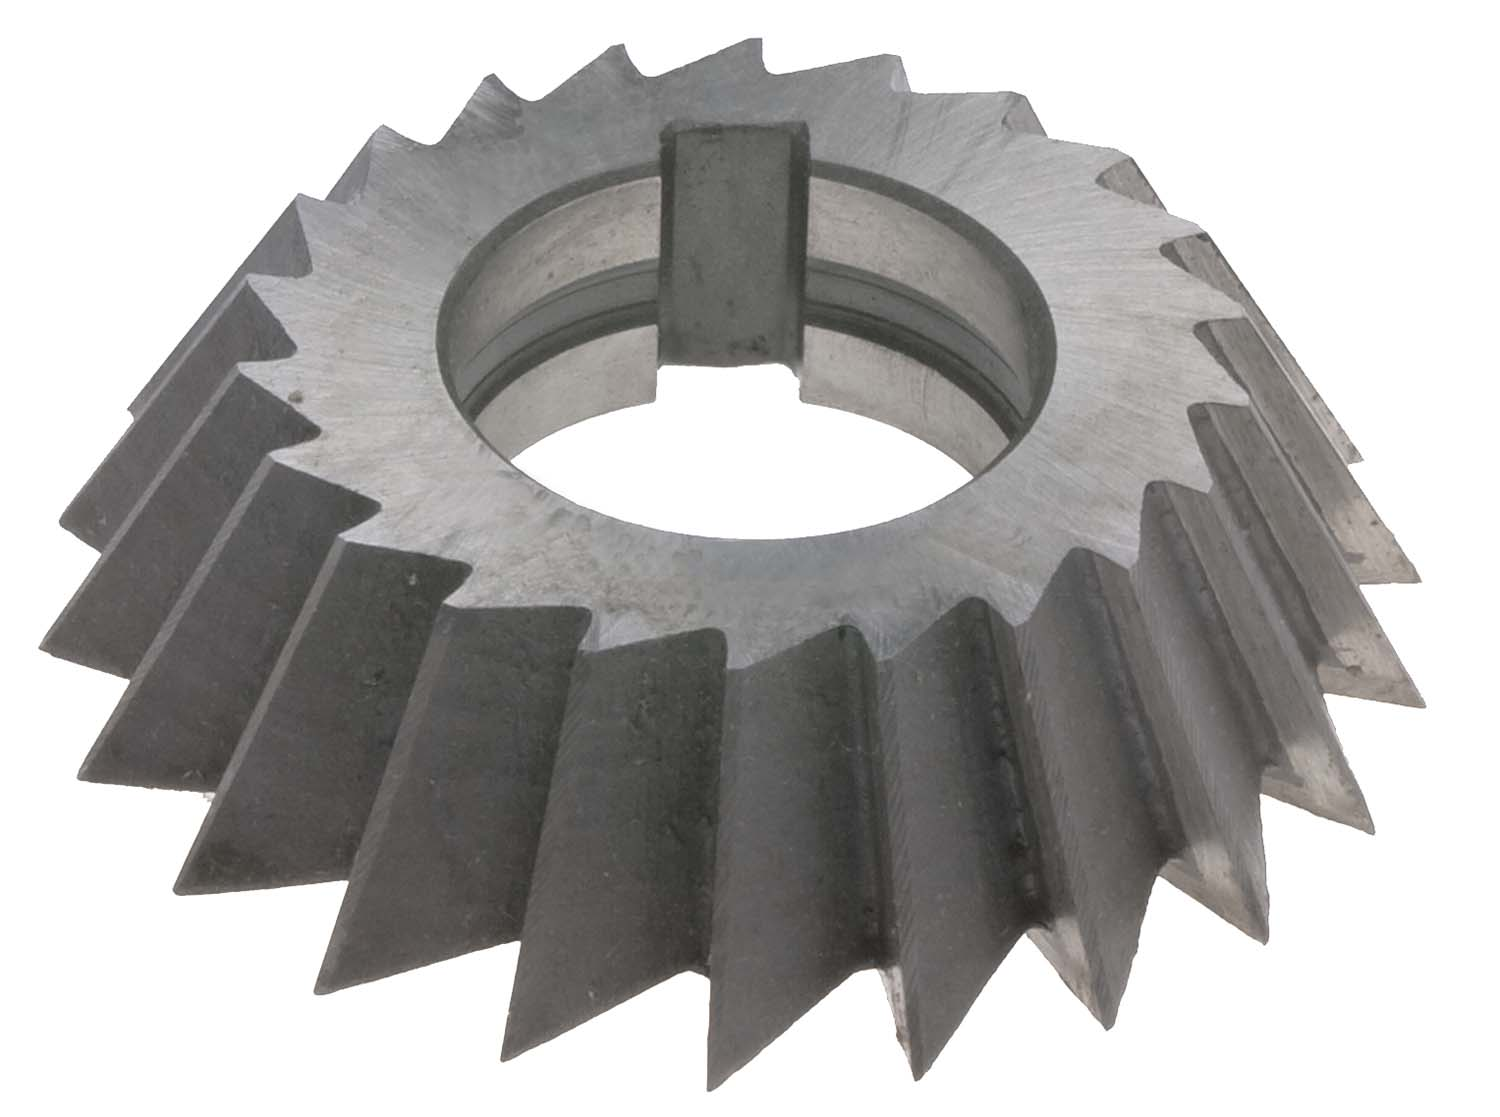 "4 X 3/4 X 1-1/4""  Right Hand 60 Degree Single Angle Cutter, High Speed Steel"